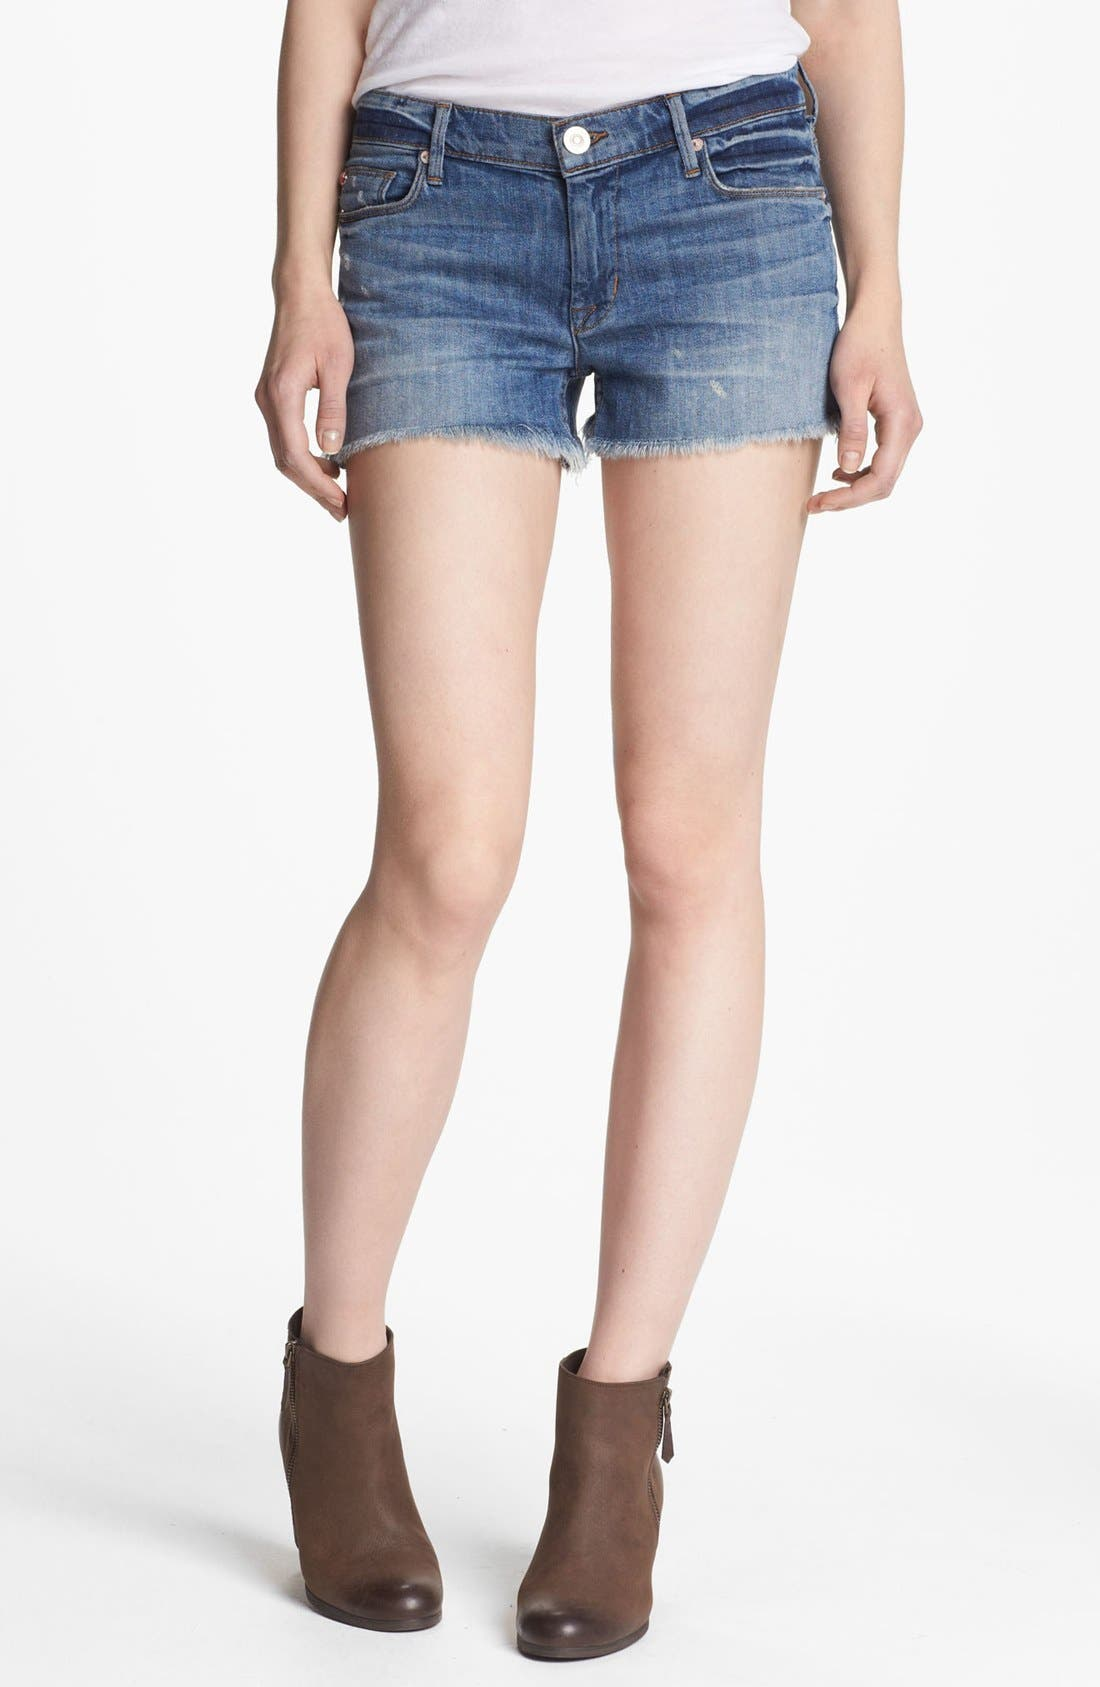 Alternate Image 1 Selected - Hudson Jeans 'Amber' Raw Edge Denim Shorts (Indie)